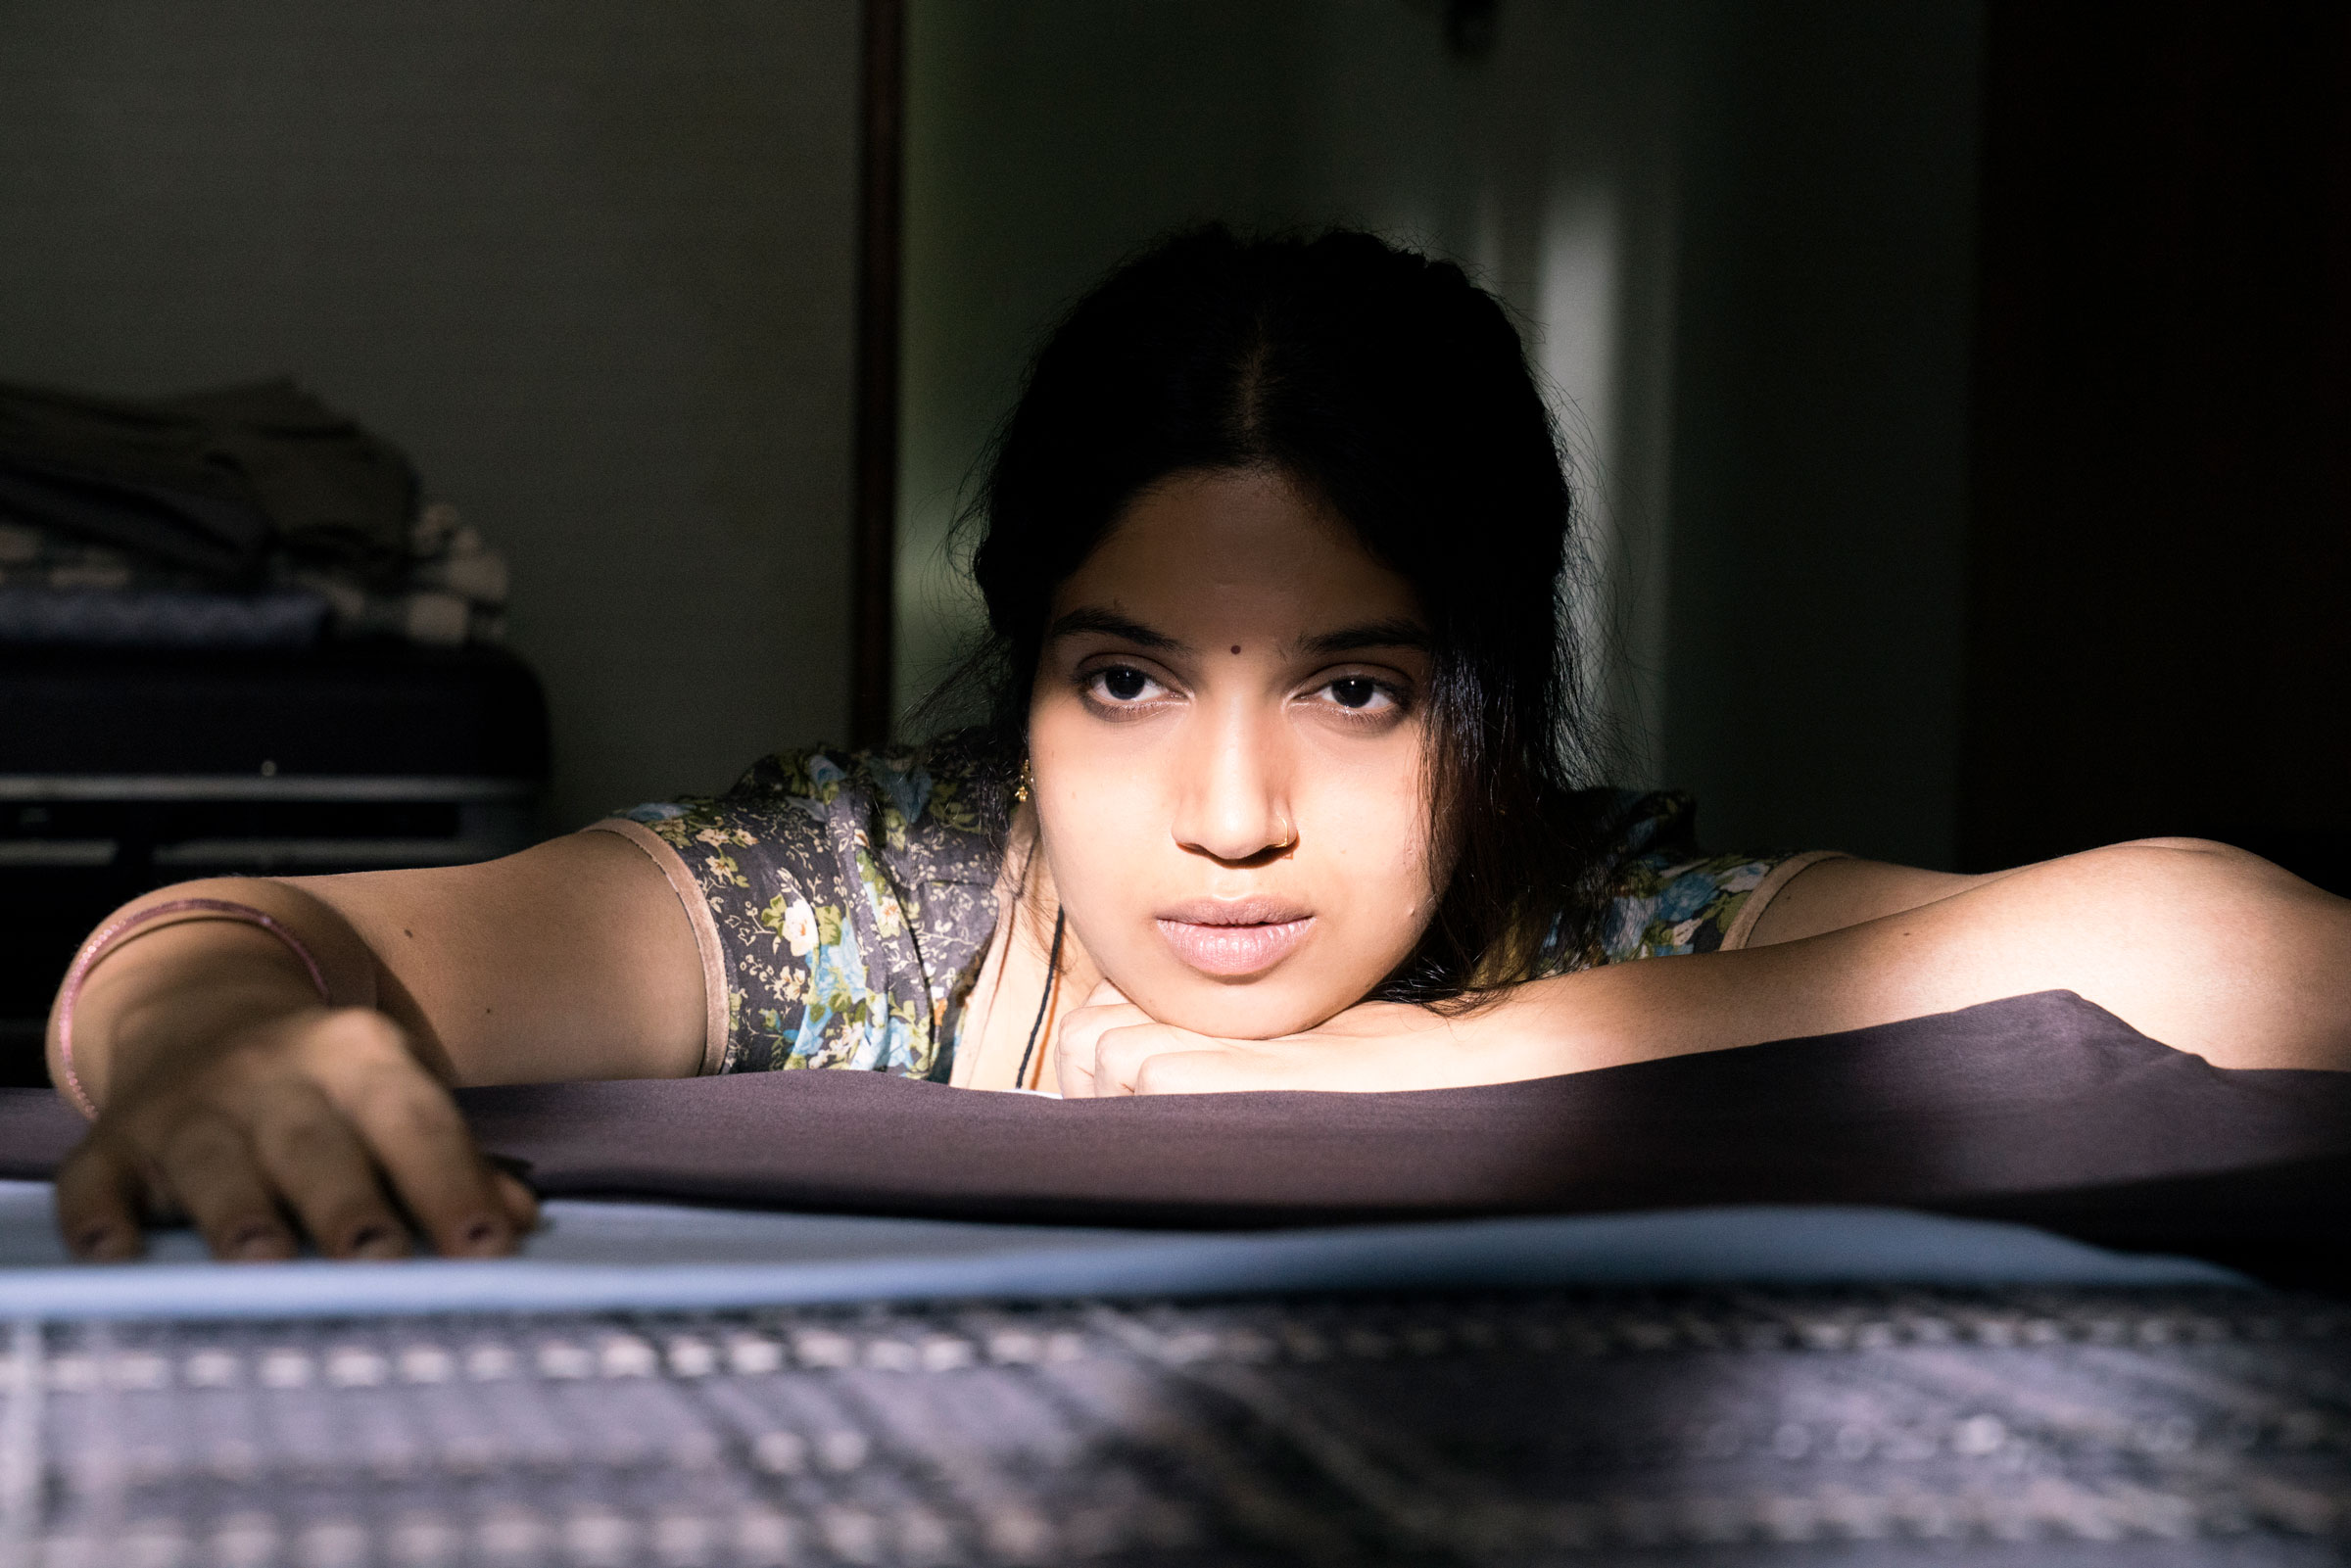 Bhumi Pednekar, an Indian woman, looks pretty disinterested at a wall as Sudha in Lust Stories